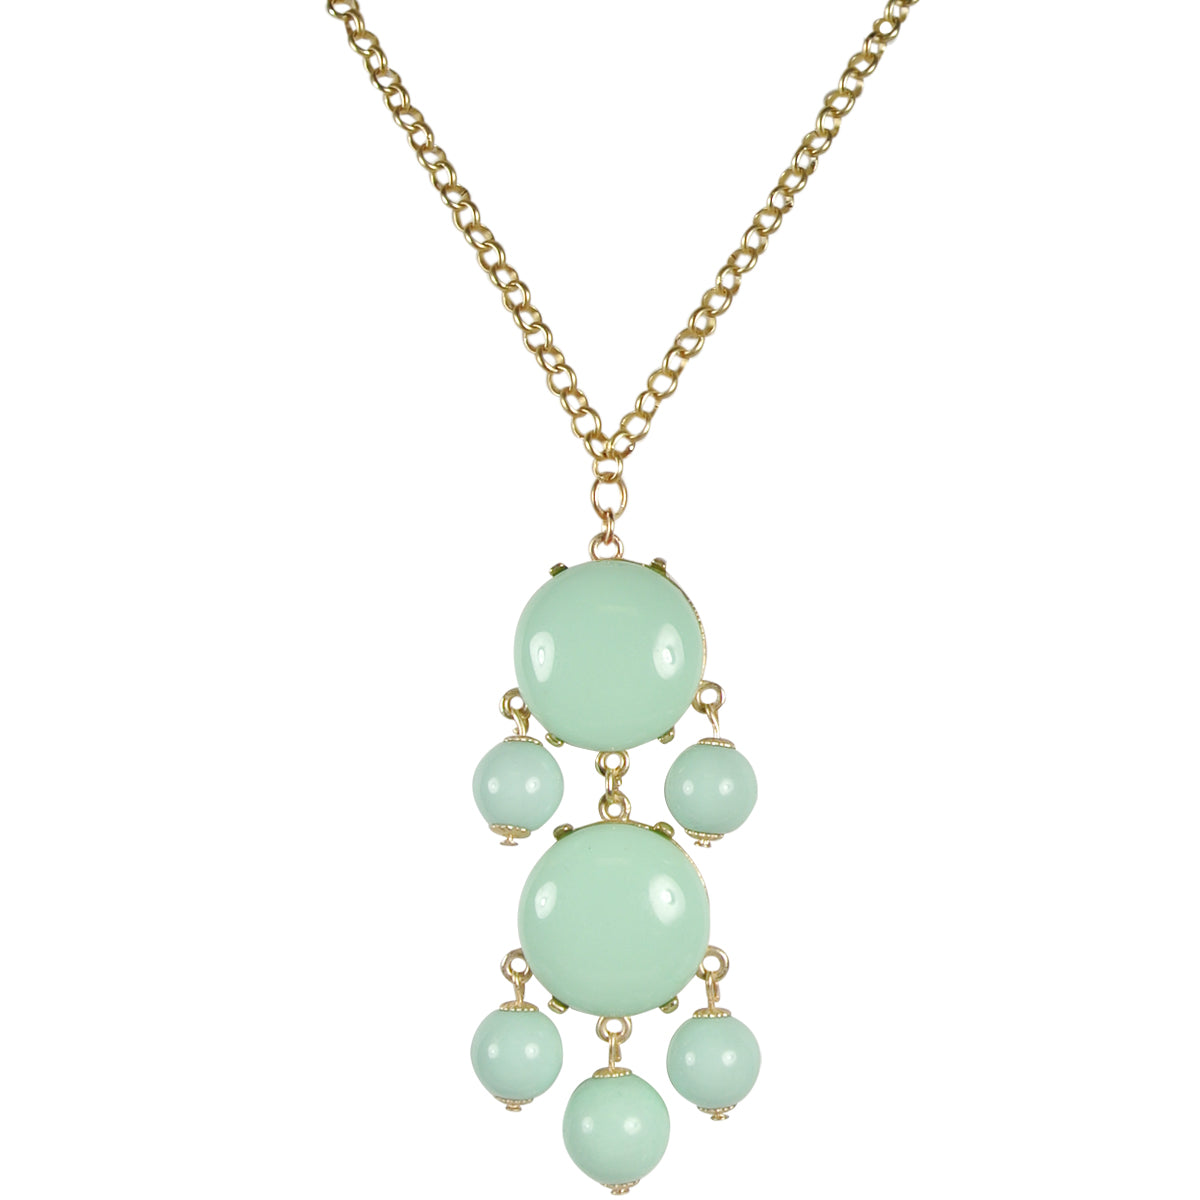 Mint Green Beaded Bubble Pendant Necklace + Blue Drop Stone Necklace [A63876, A64556]